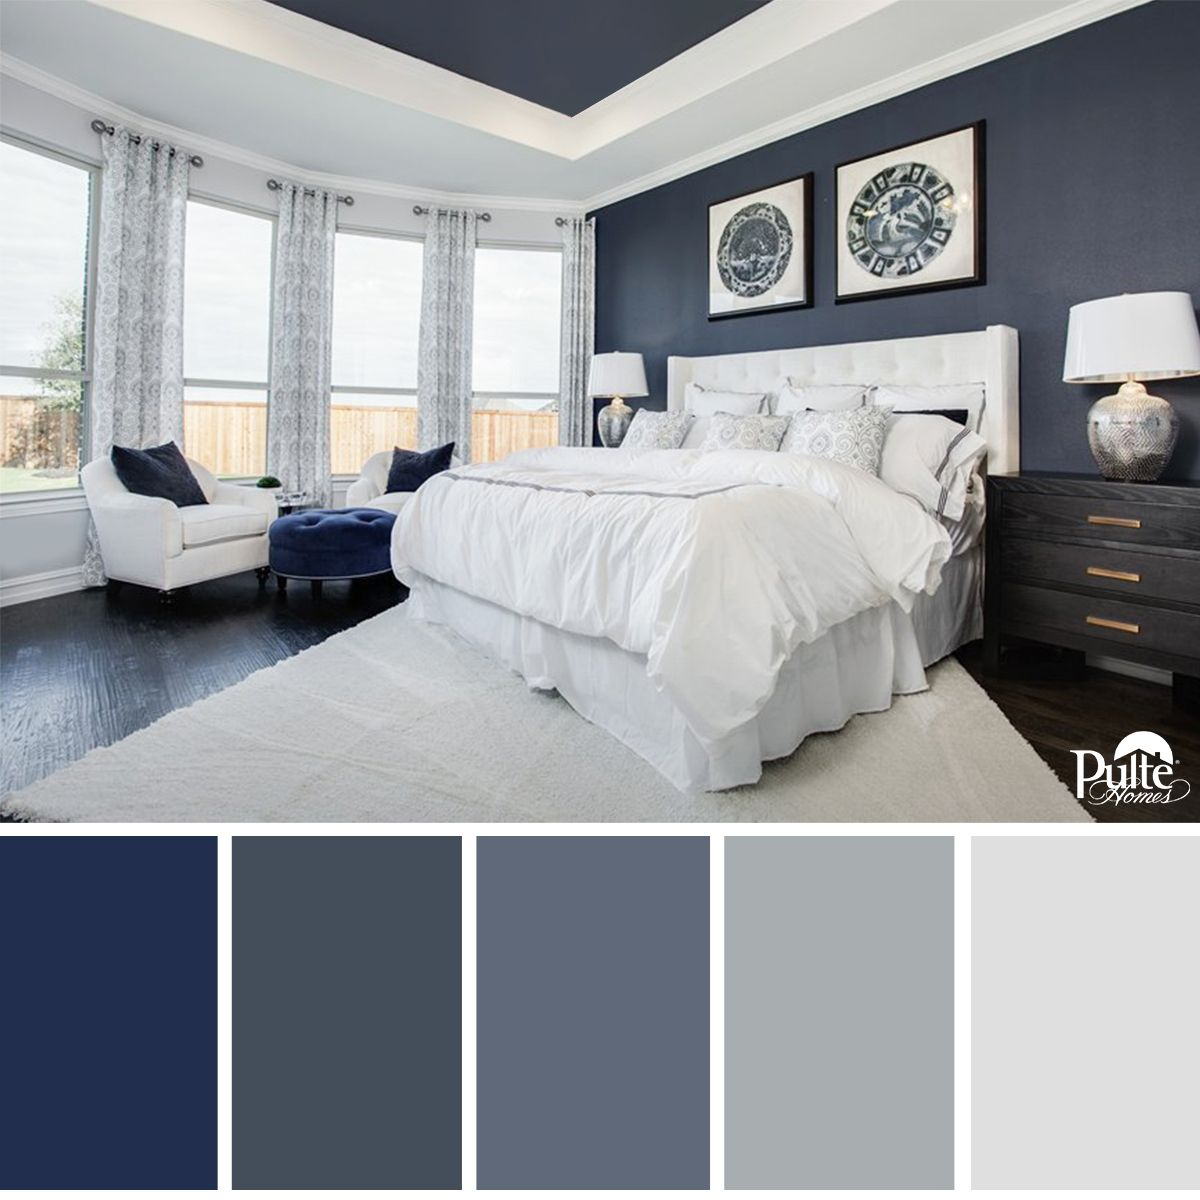 Master Bedroom Wall Colors This Bedroom Design Has The Right Idea The Rich Blue Color